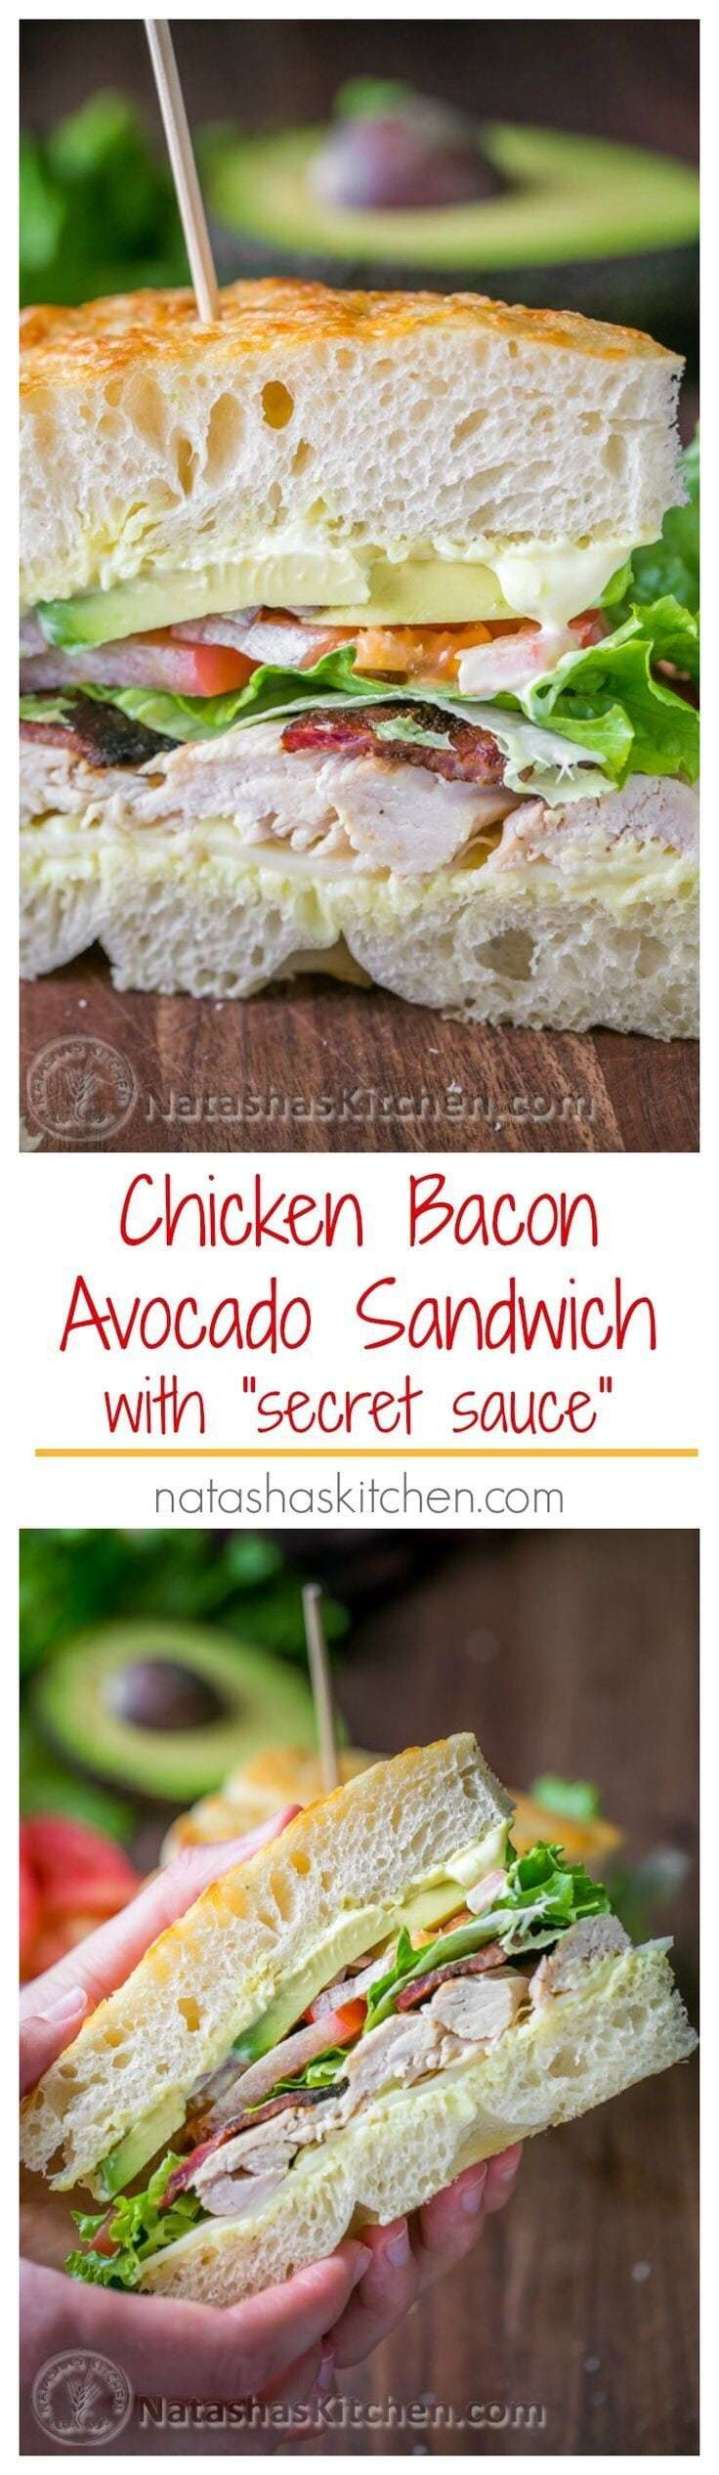 "Chicken Bacon Avocado Sandwich with ""Secret Sauce"" - - 20 Best Croissant Sandwich Recipes"